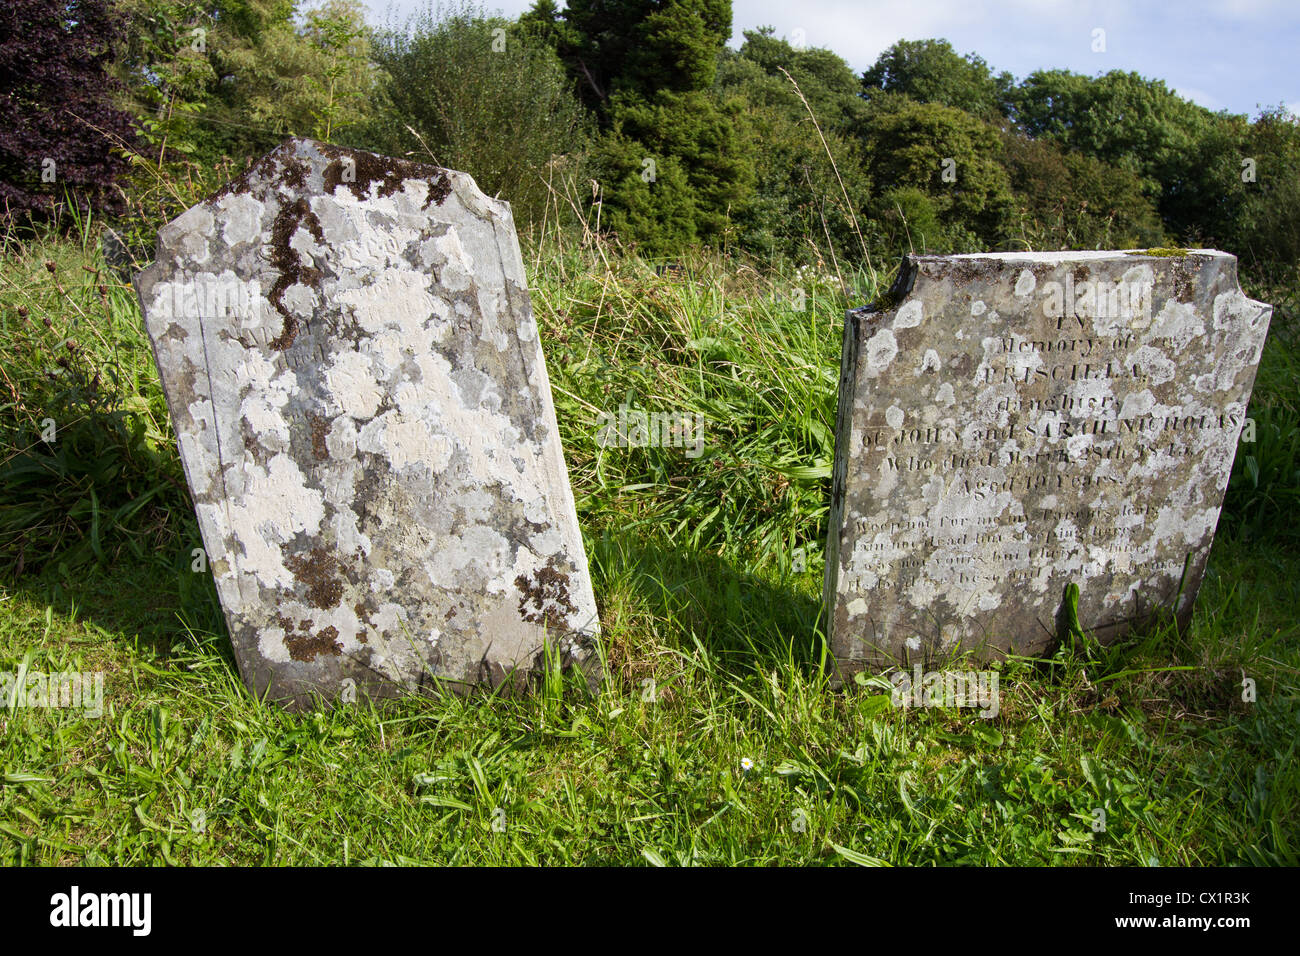 Old tombstones with mottled patterns formed by lichens - Stock Image